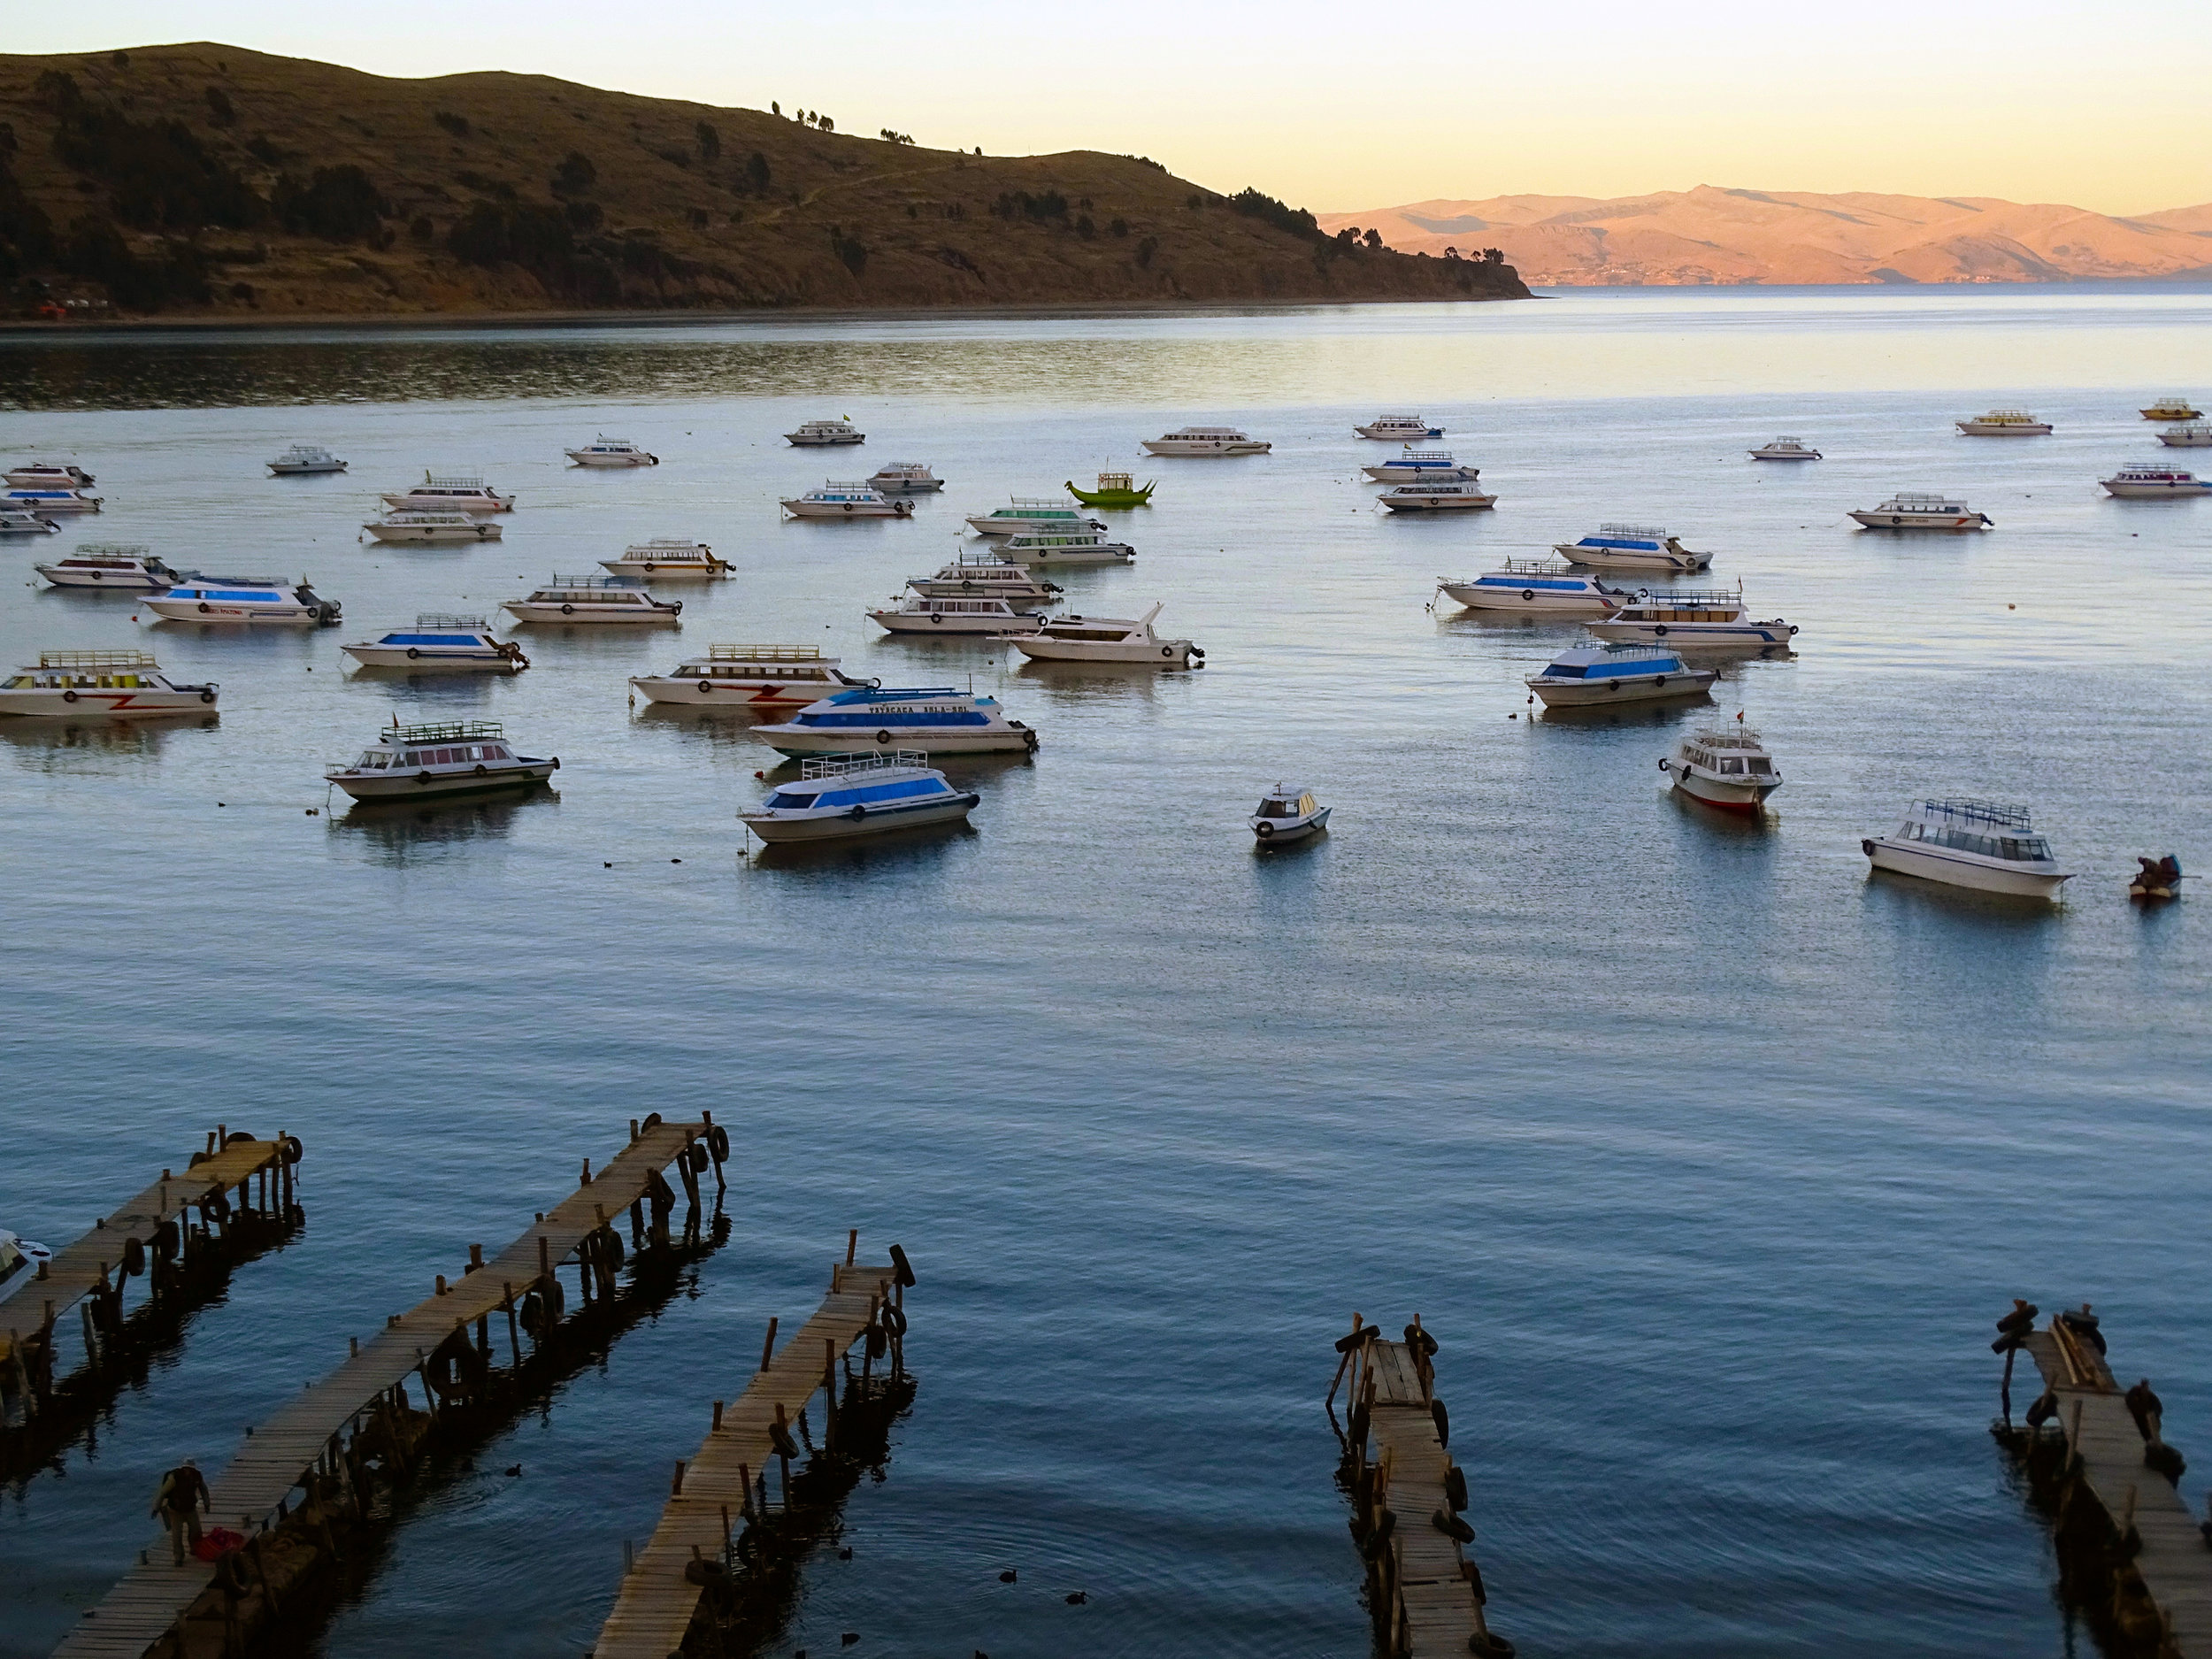 Sunrise on Lake Titicaca.